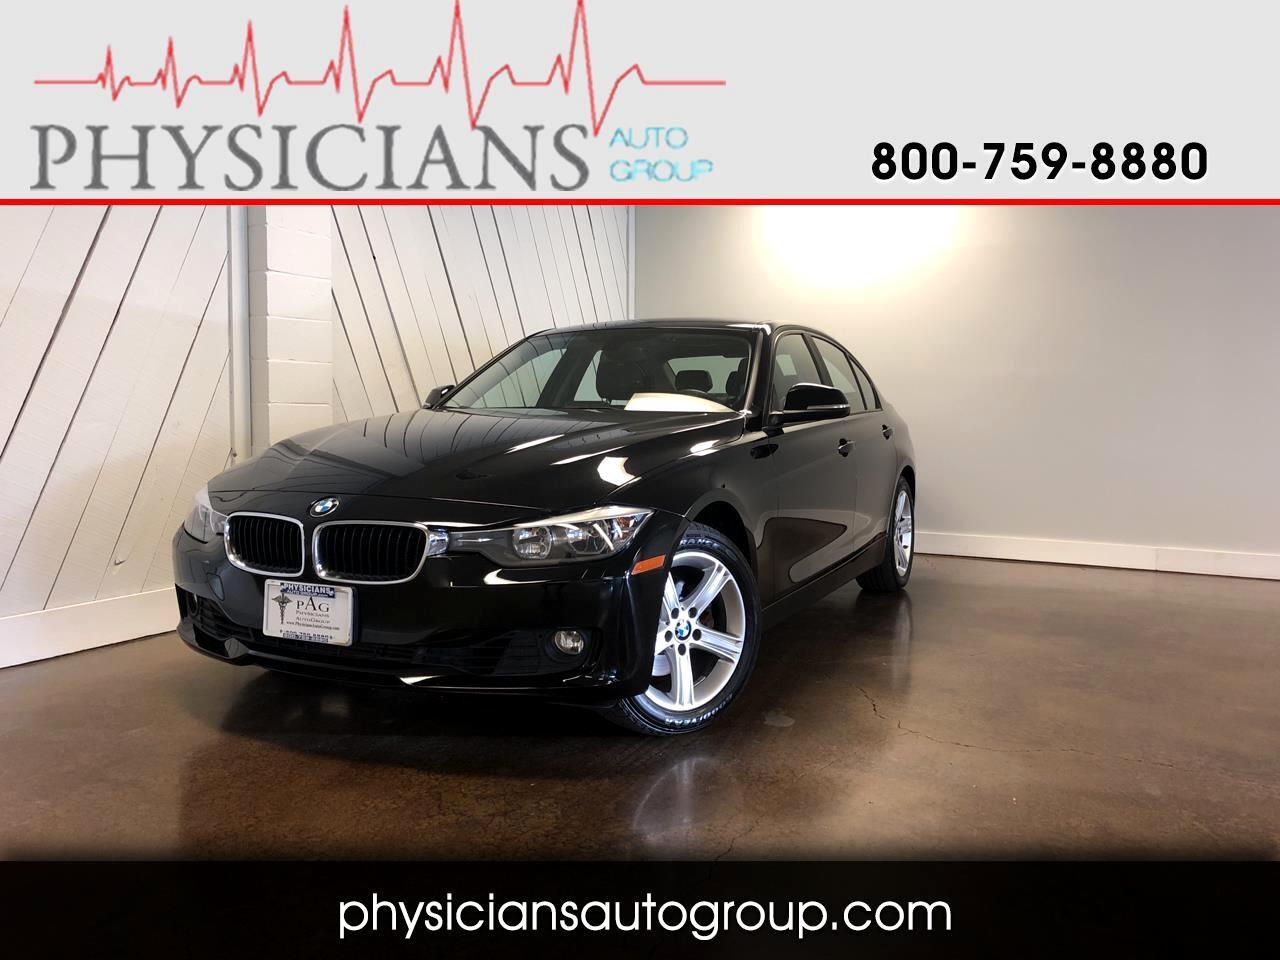 BMW 3 Series 4dr Sdn 328i xDrive AWD 2014